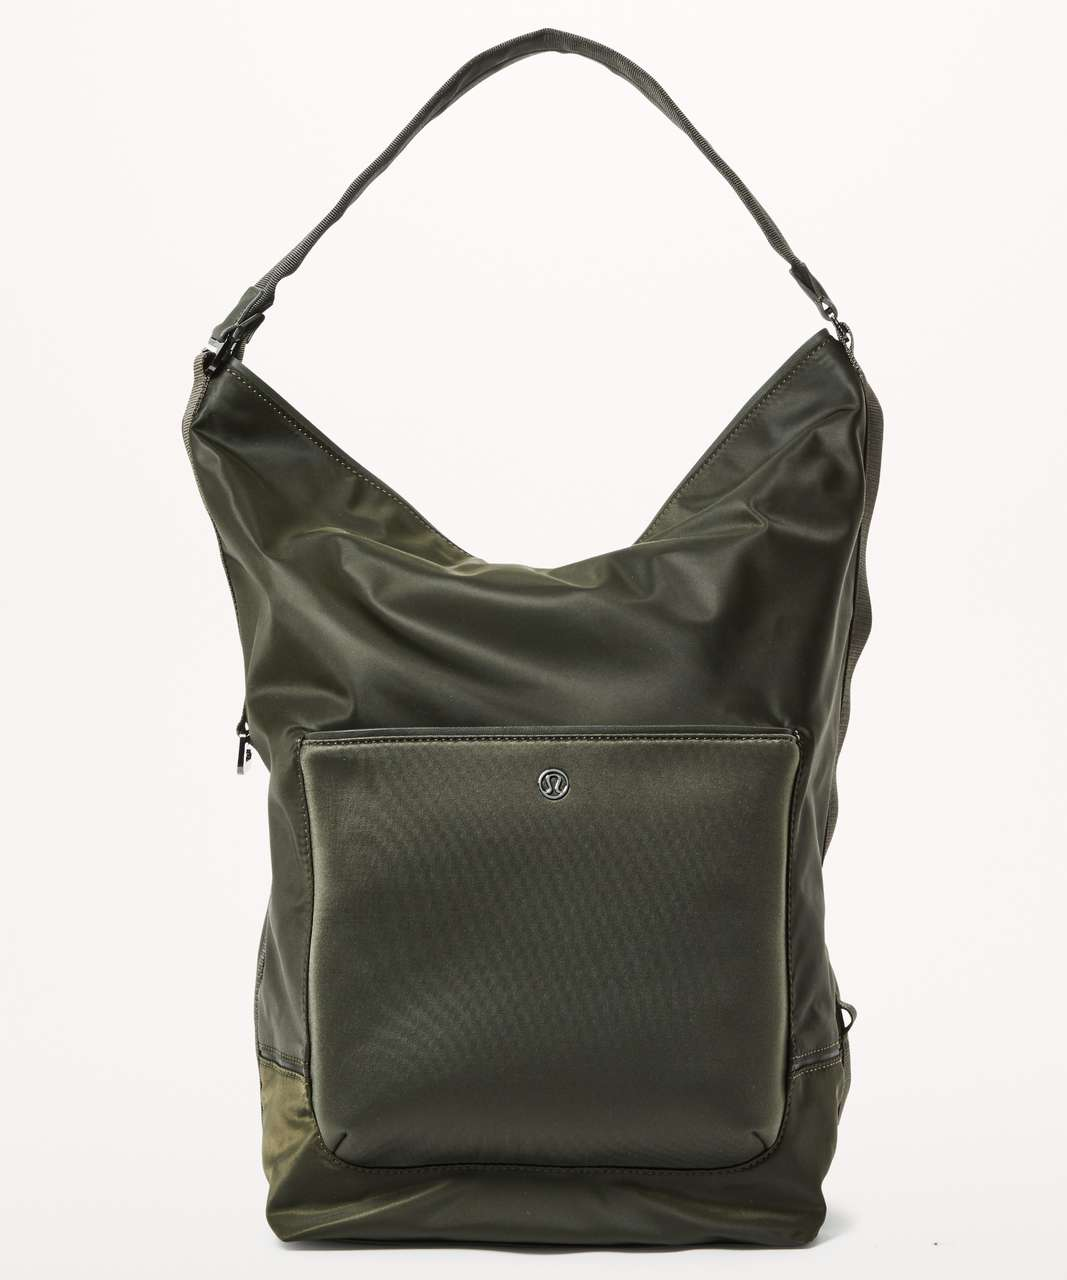 Lululemon All Set Hobo 21L - Dark Olive